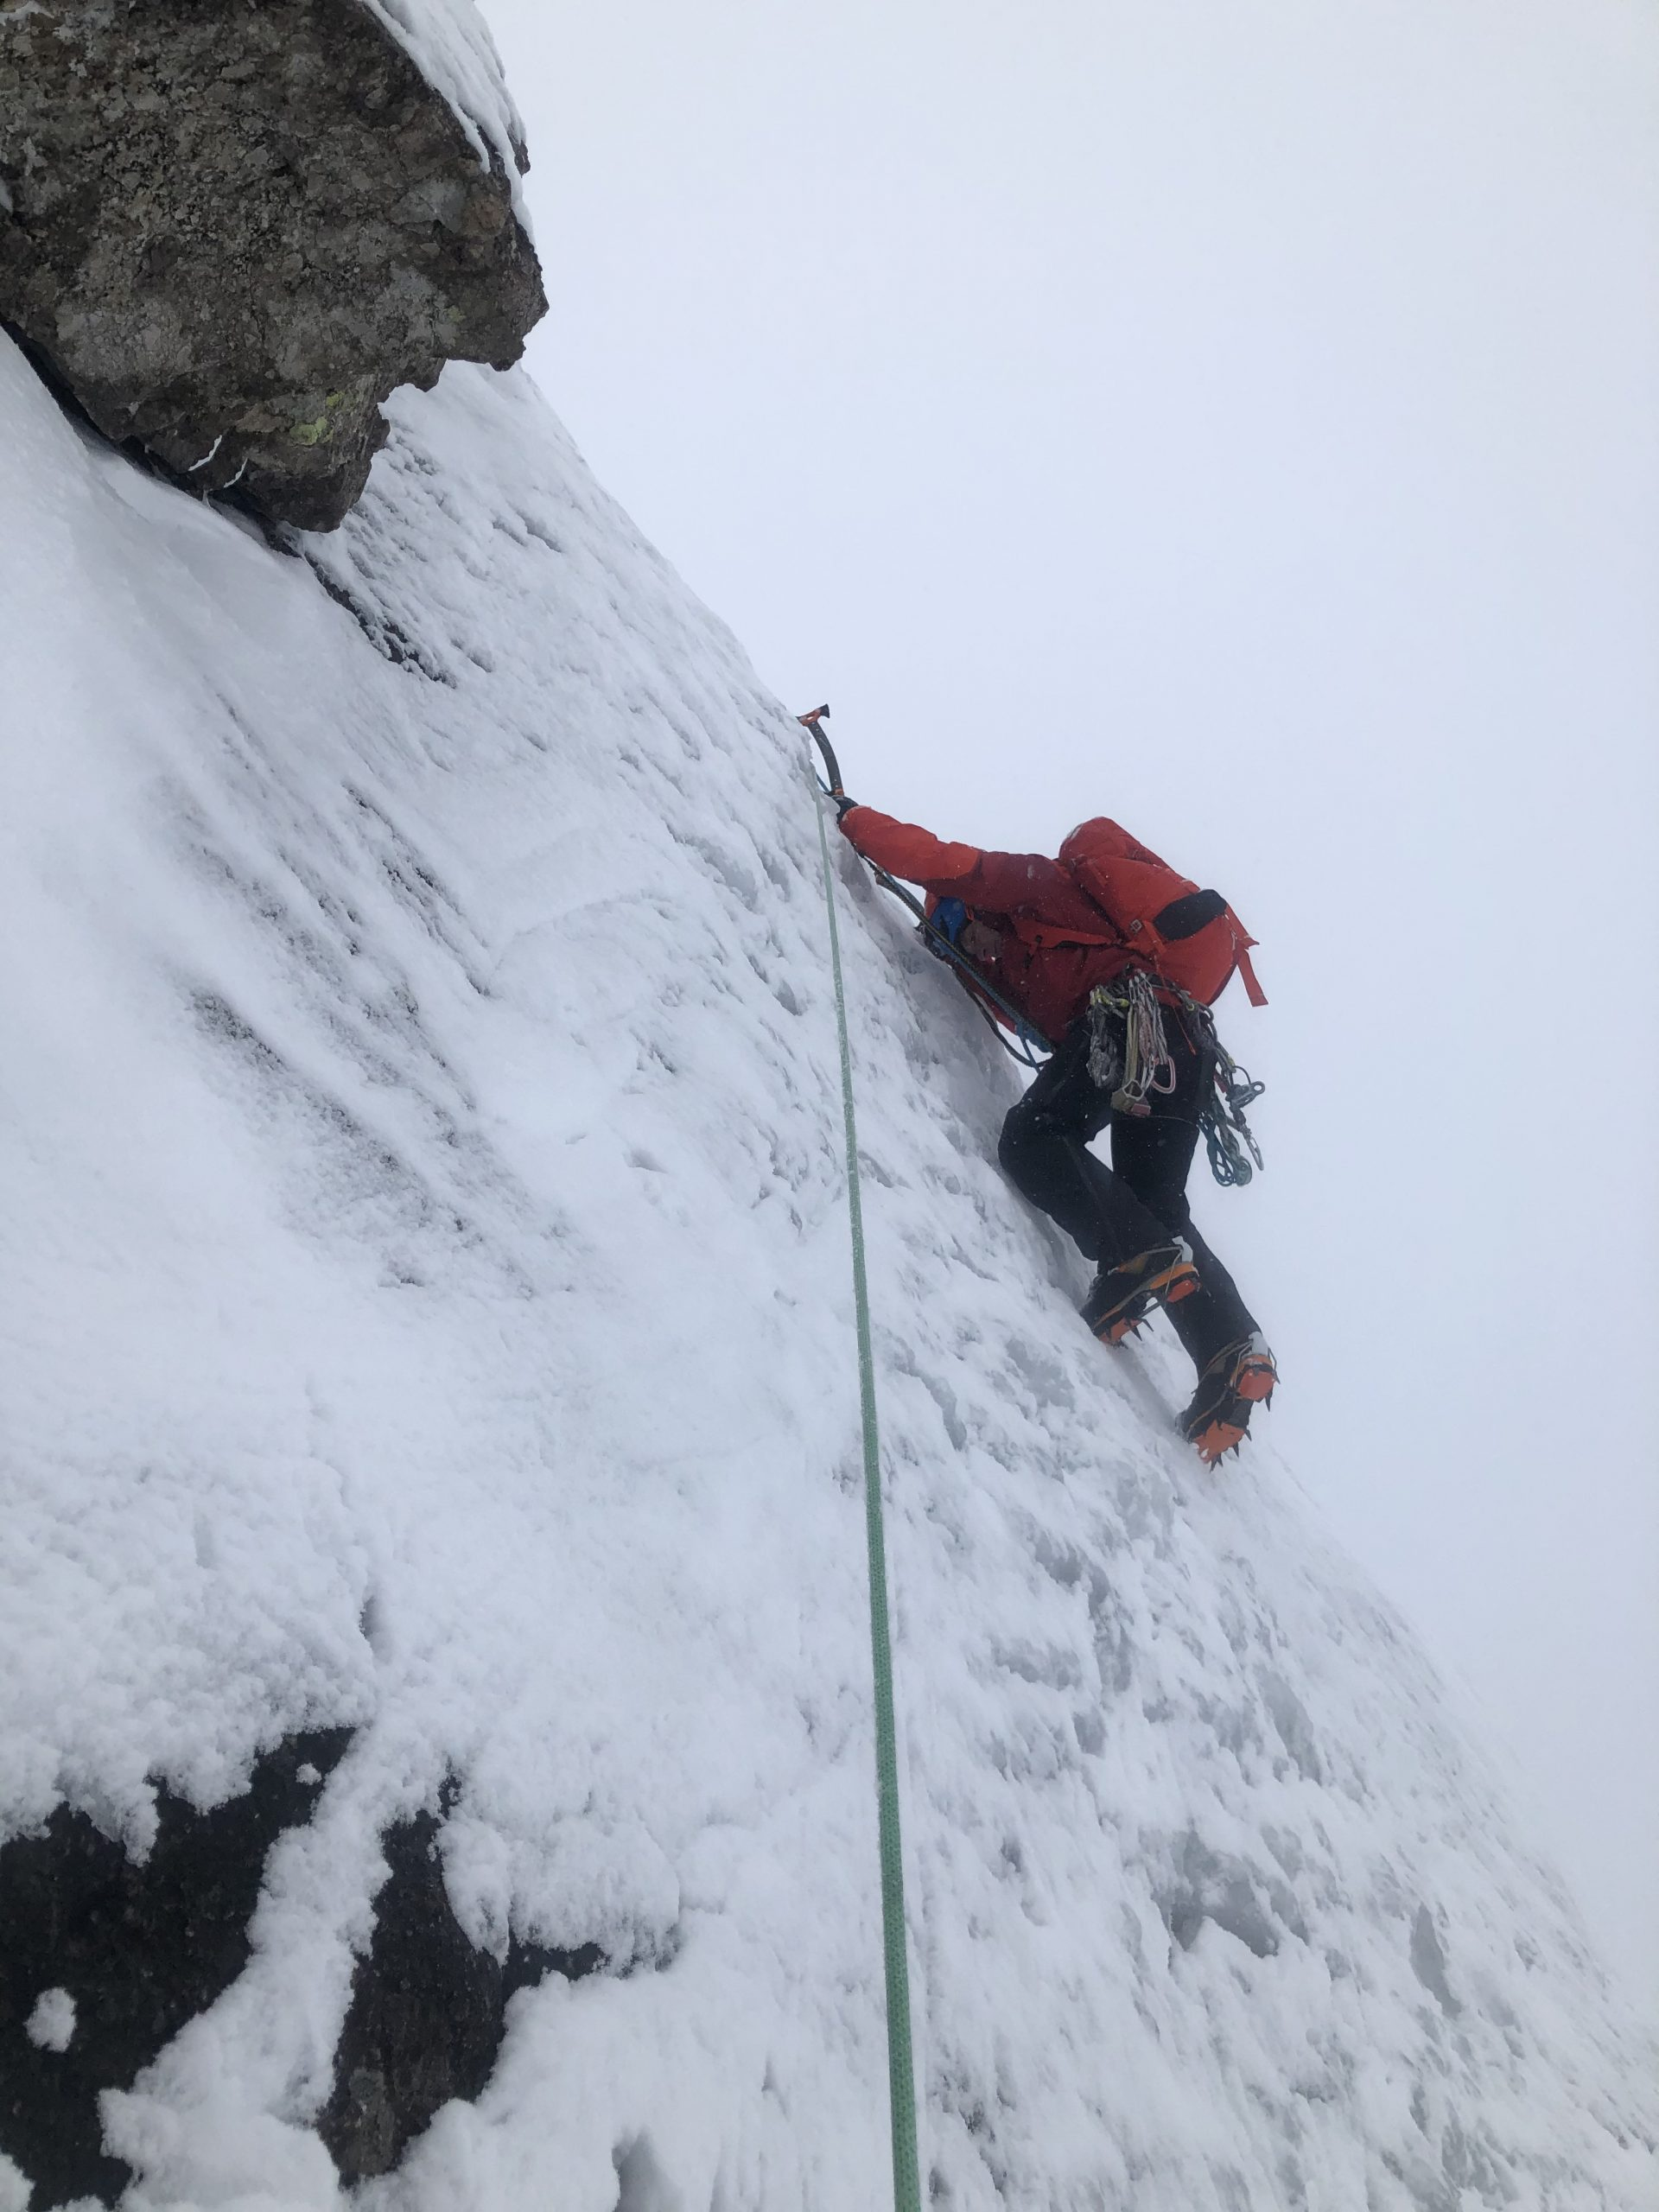 A climber balances on his front points while climbing The Curtain on Ben Nevis - typical of our winter climbing courses in the Cairngorms, Glencoe and Ben Nevis